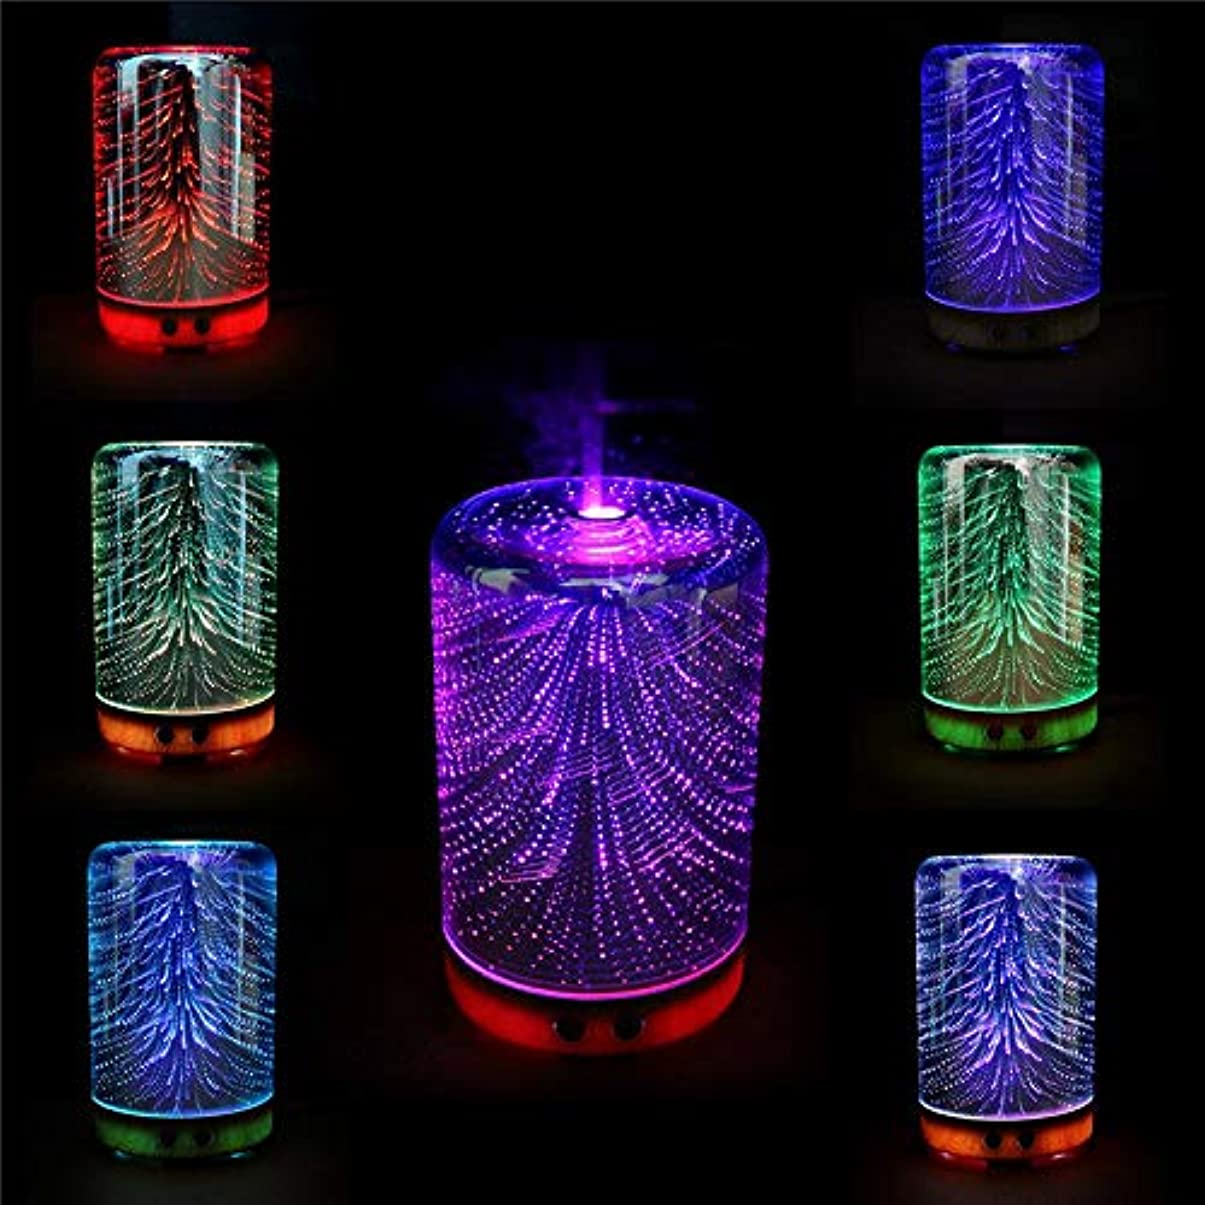 筋方向マーキーFishagelo Color Changing 3D Lighting Essential Oil Aroma Diffuser Ultrasonic Mist Humidifier Aromatherapy 141[...